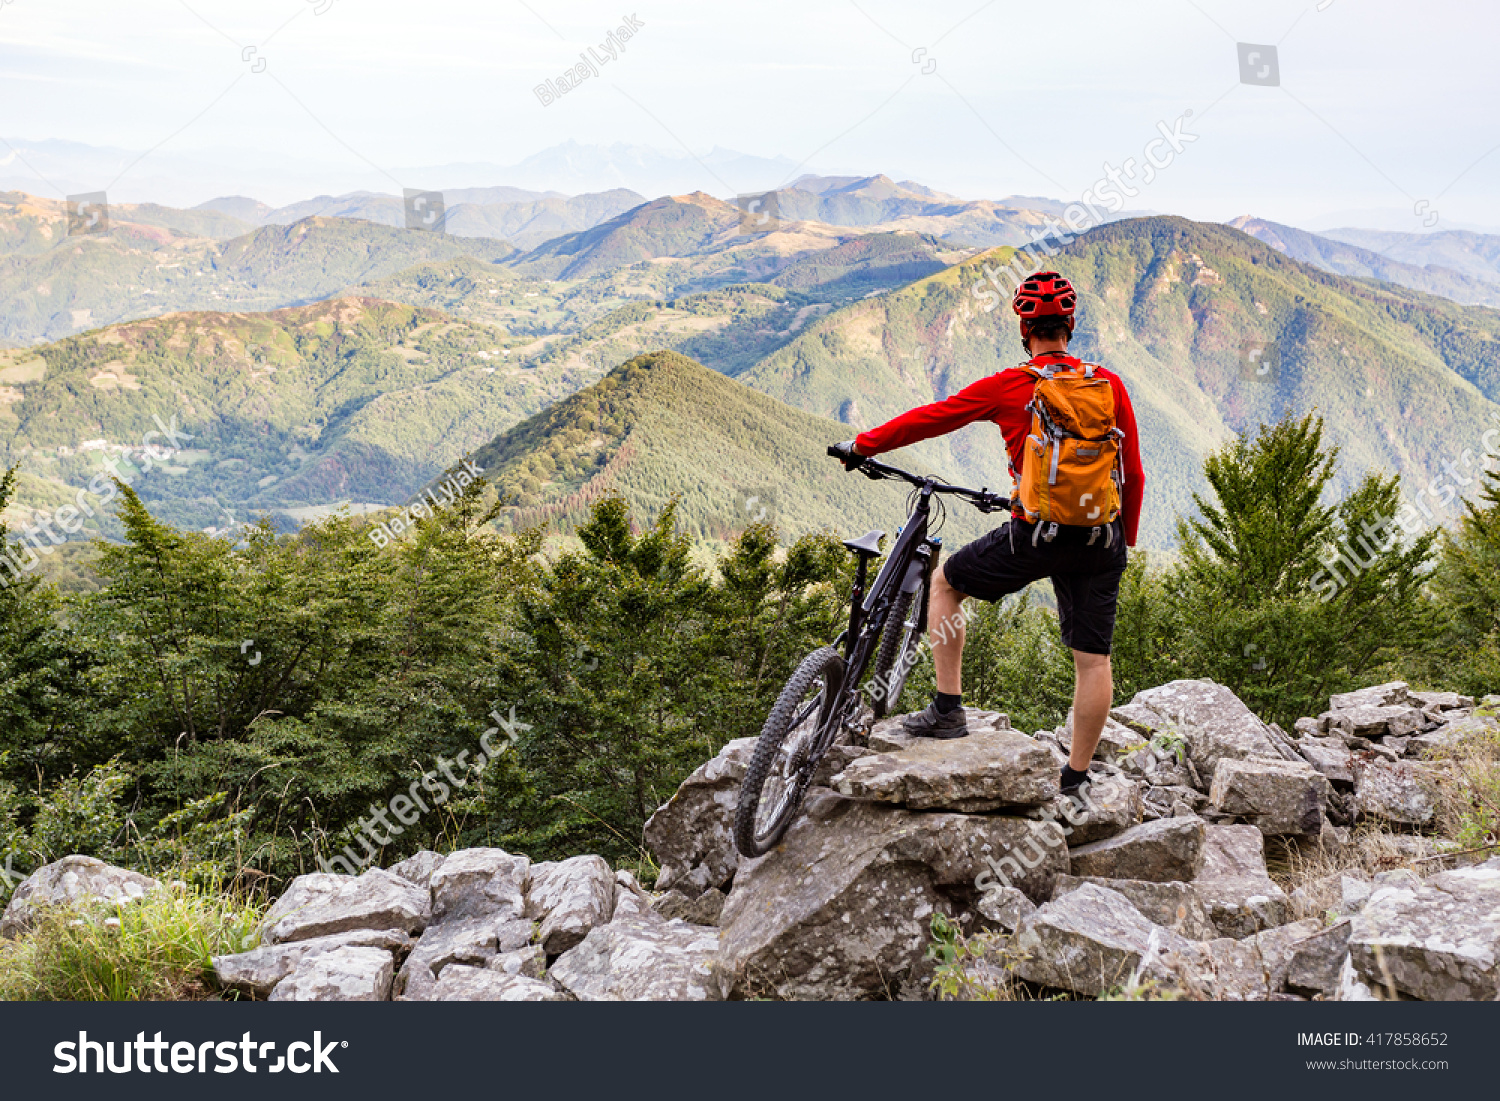 Mountain biker looking at view on bike trail in autumn mountains Rider cycling on rocky single track Sport fitness motivation and adventure inspiration